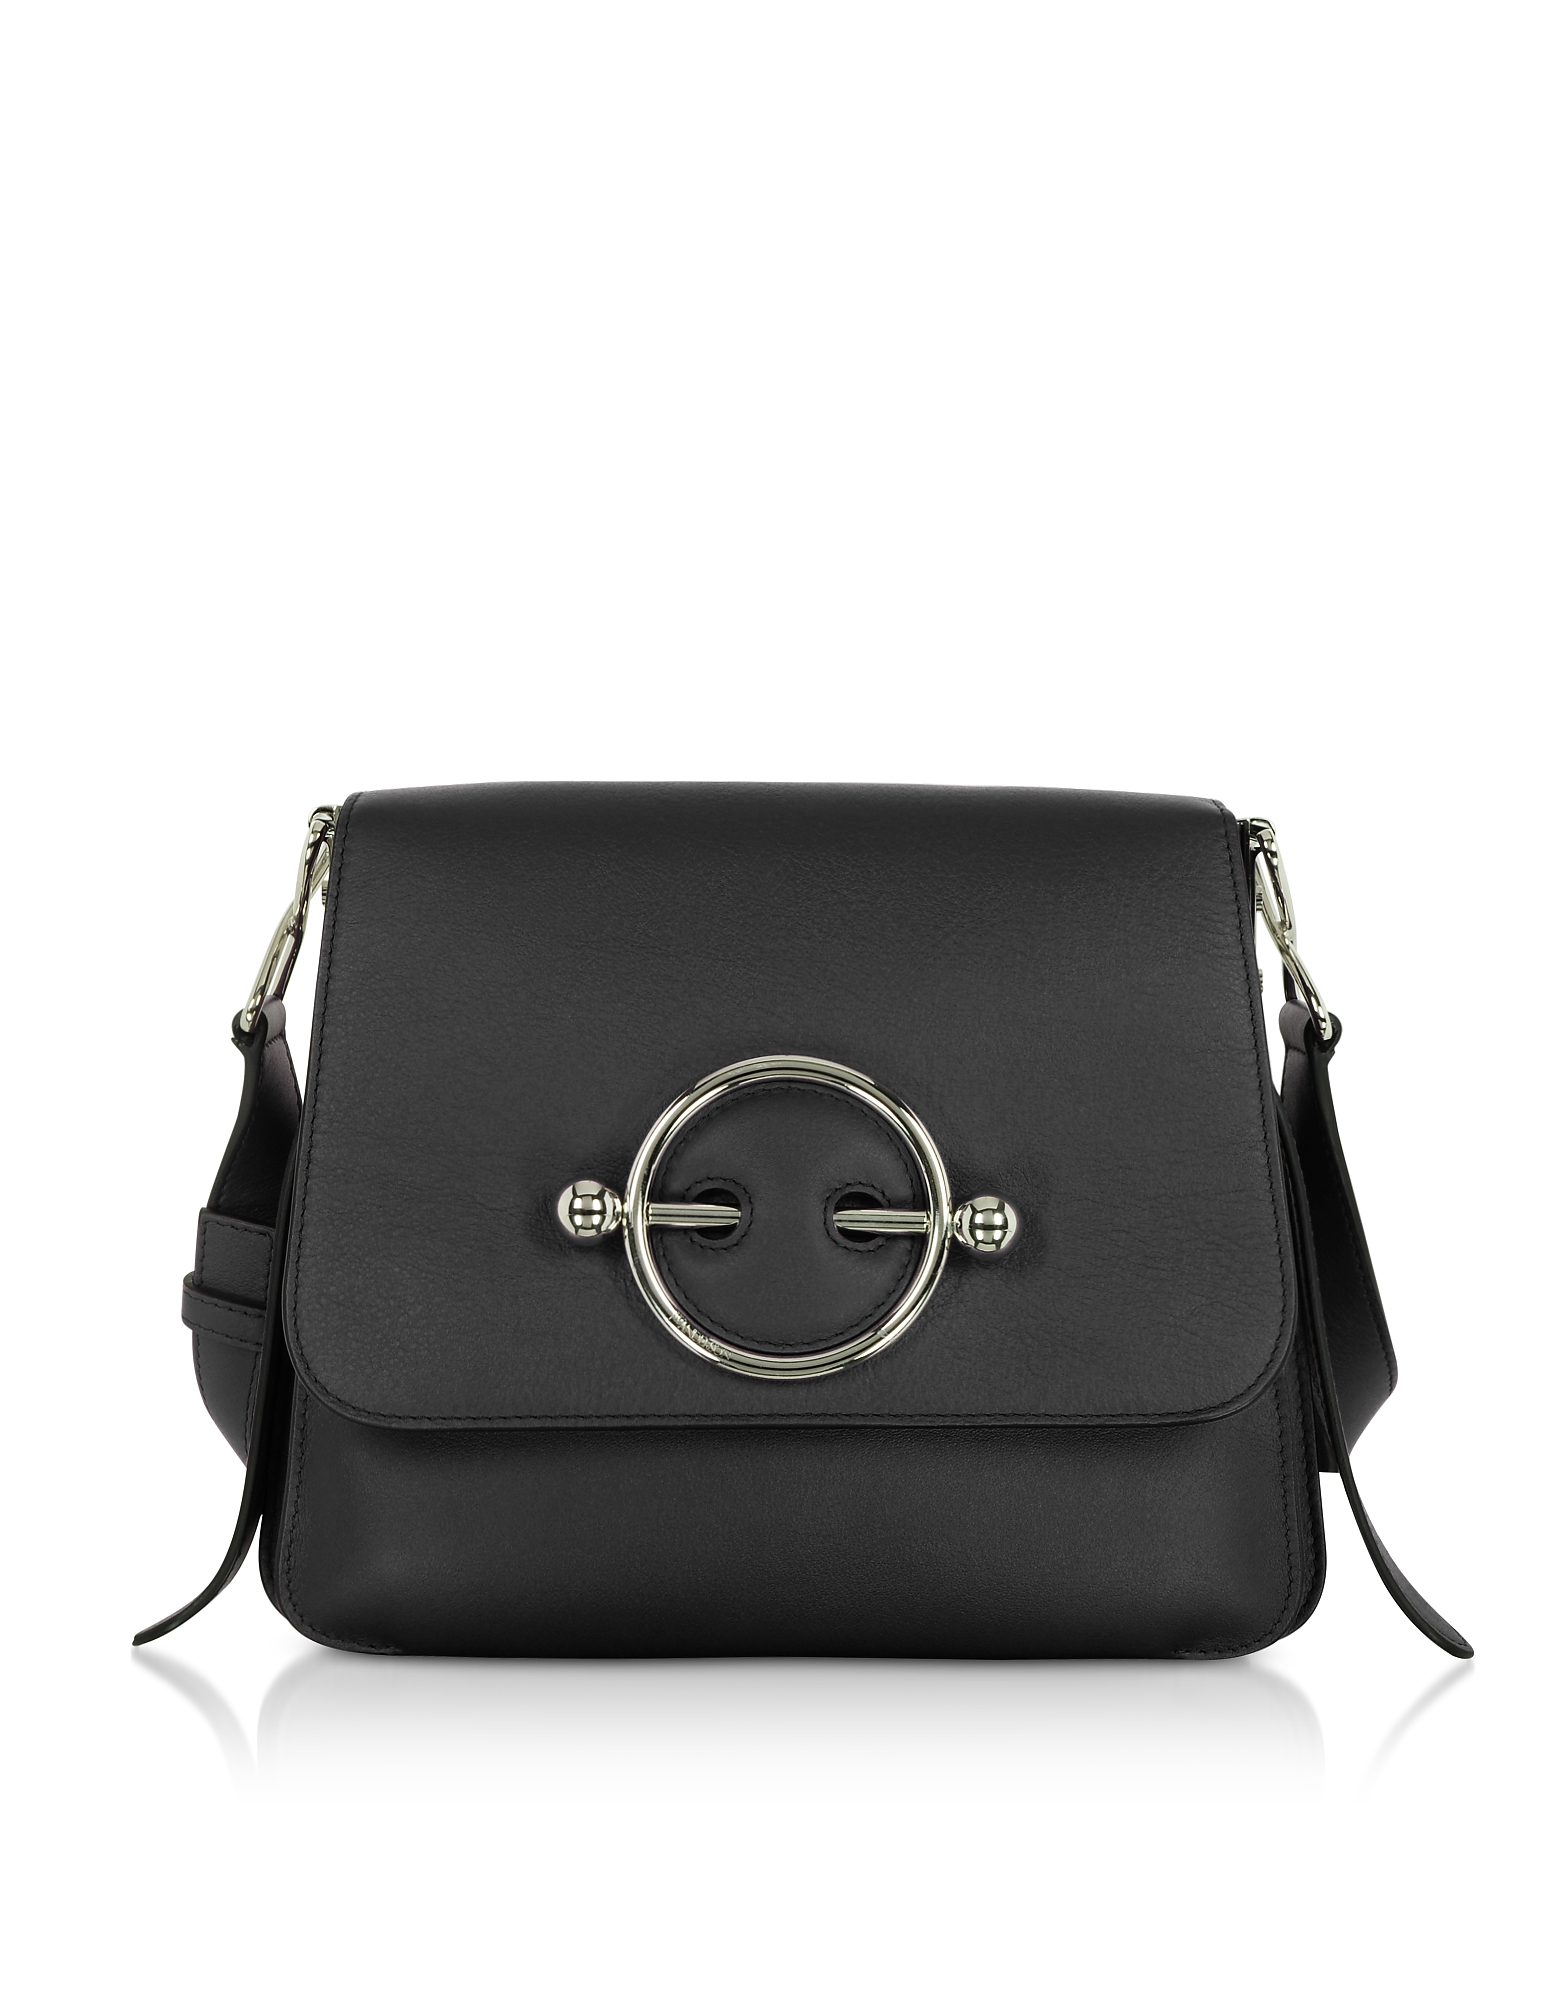 Image of JW Anderson Designer Handbags, Black Leather Disc Bag